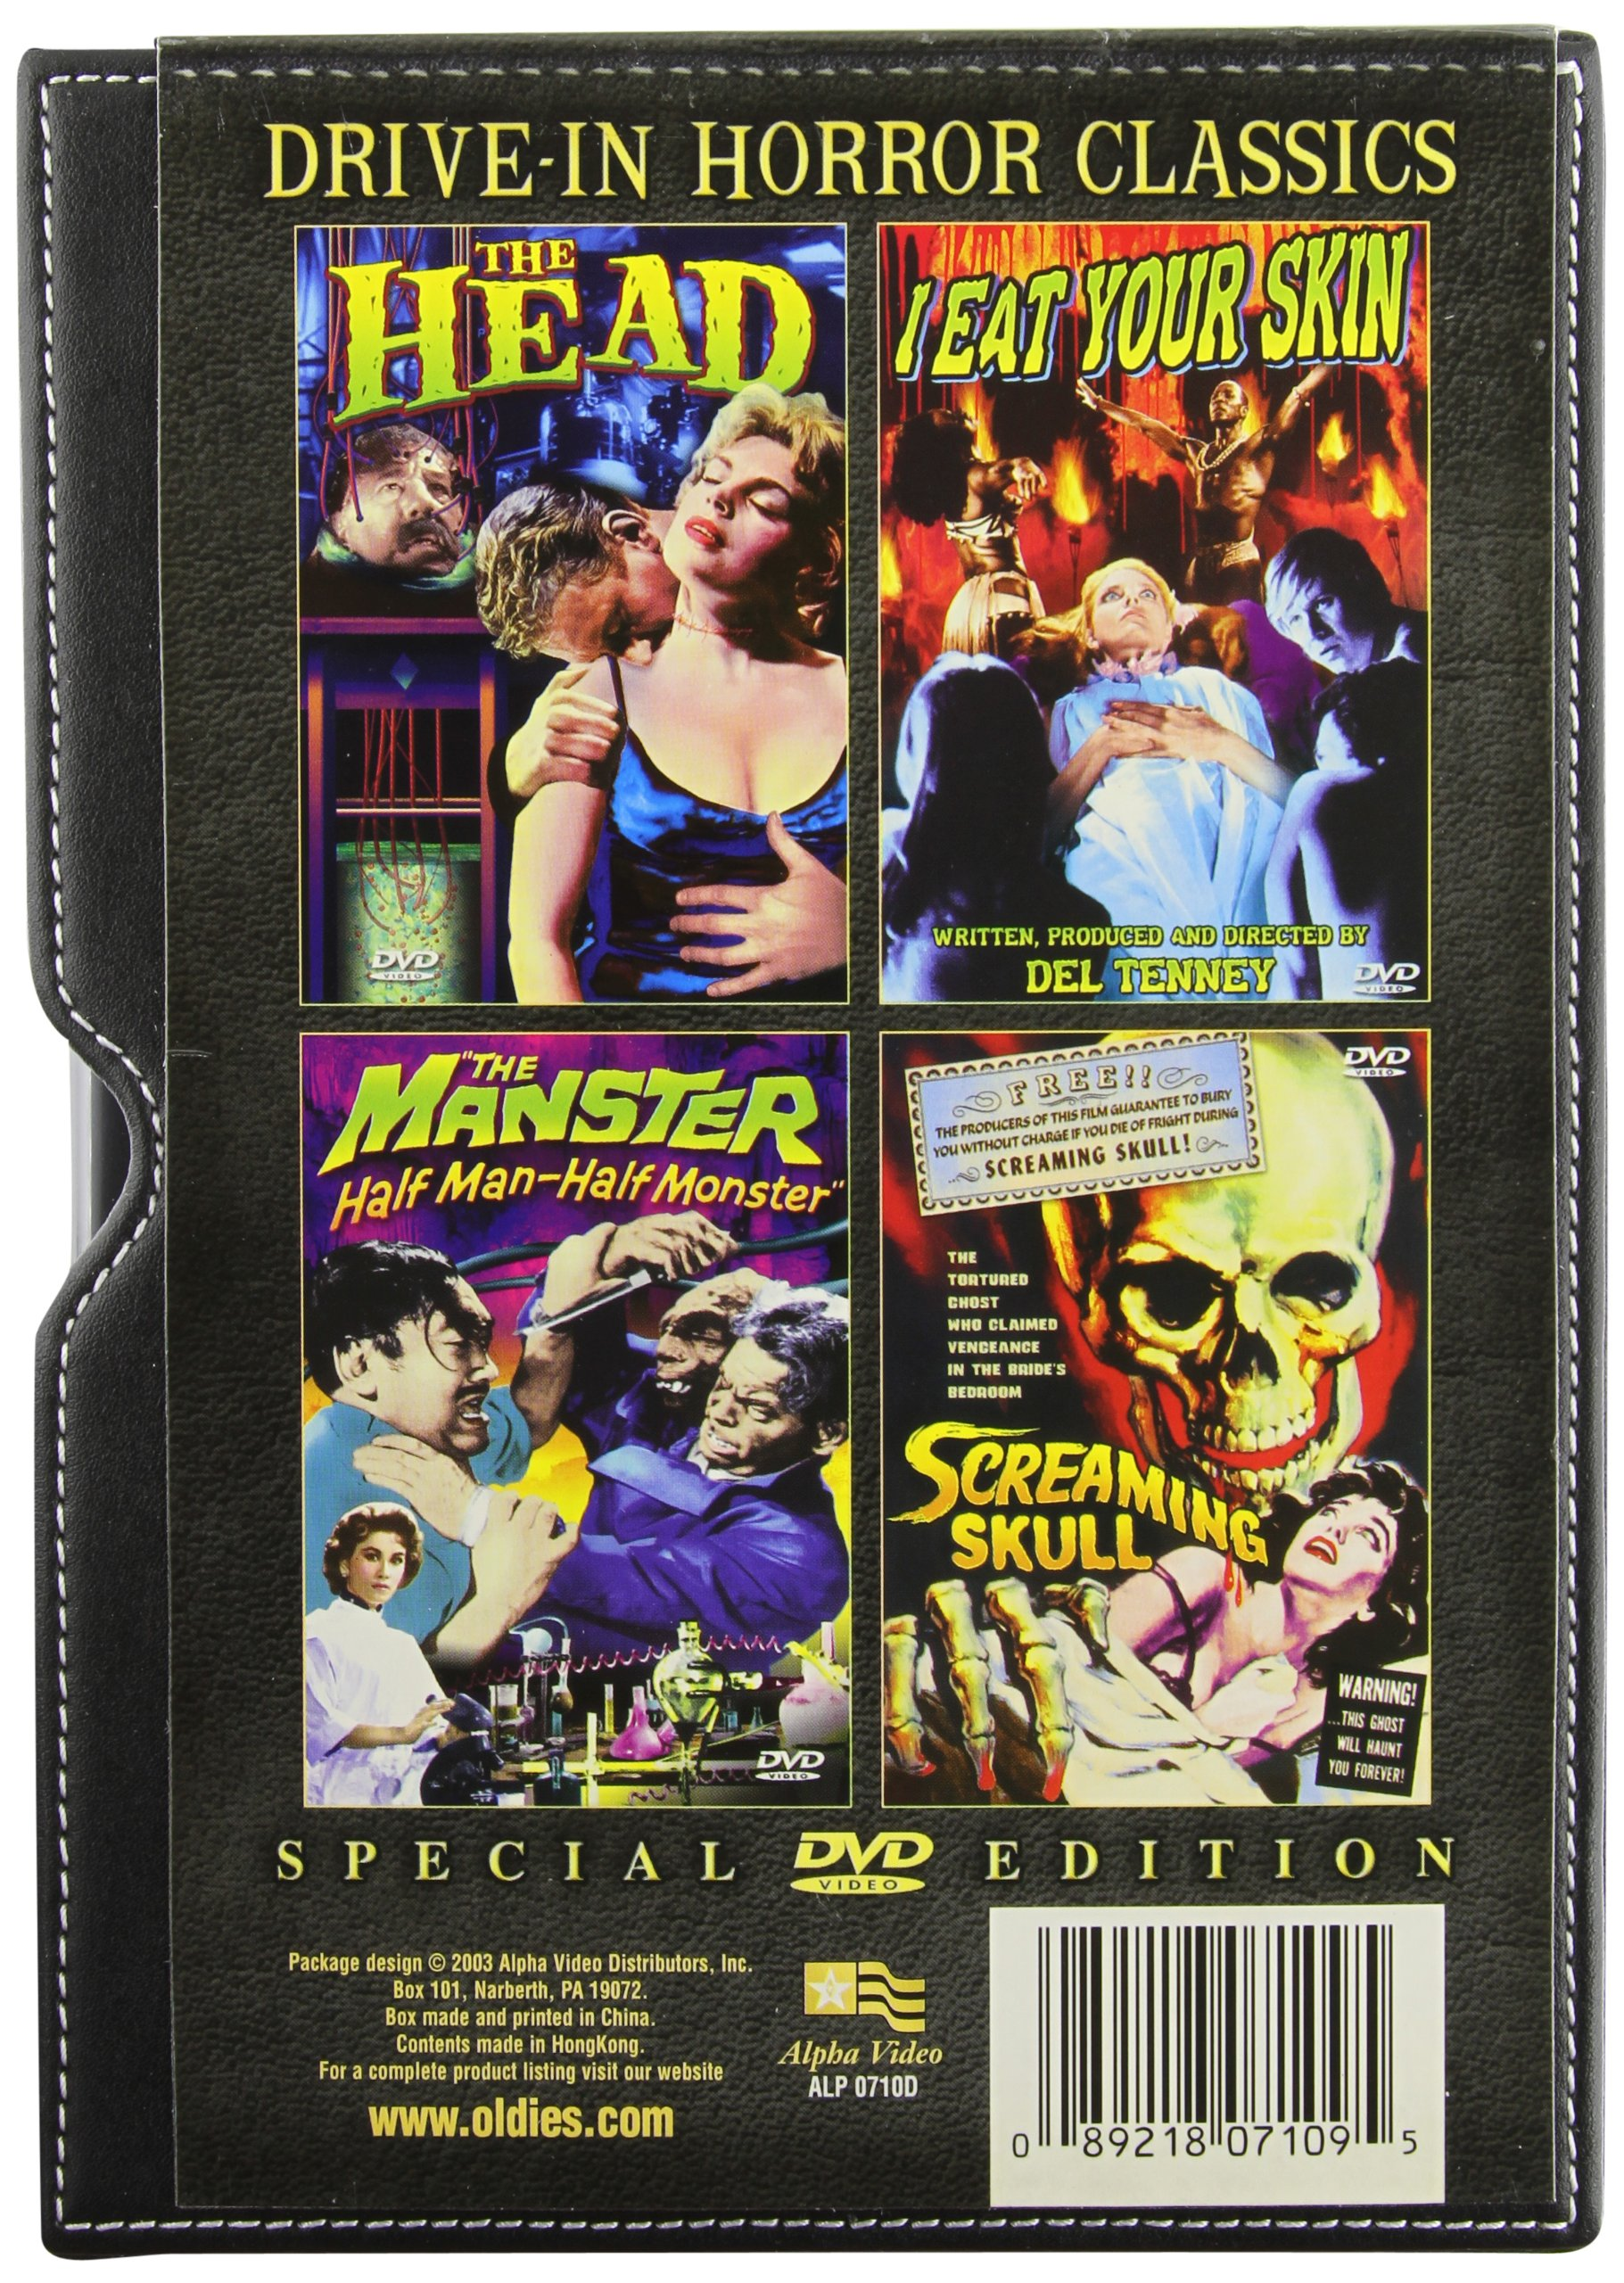 Drive-In Horror Classics Collection (4-DVD Leather Box Set)